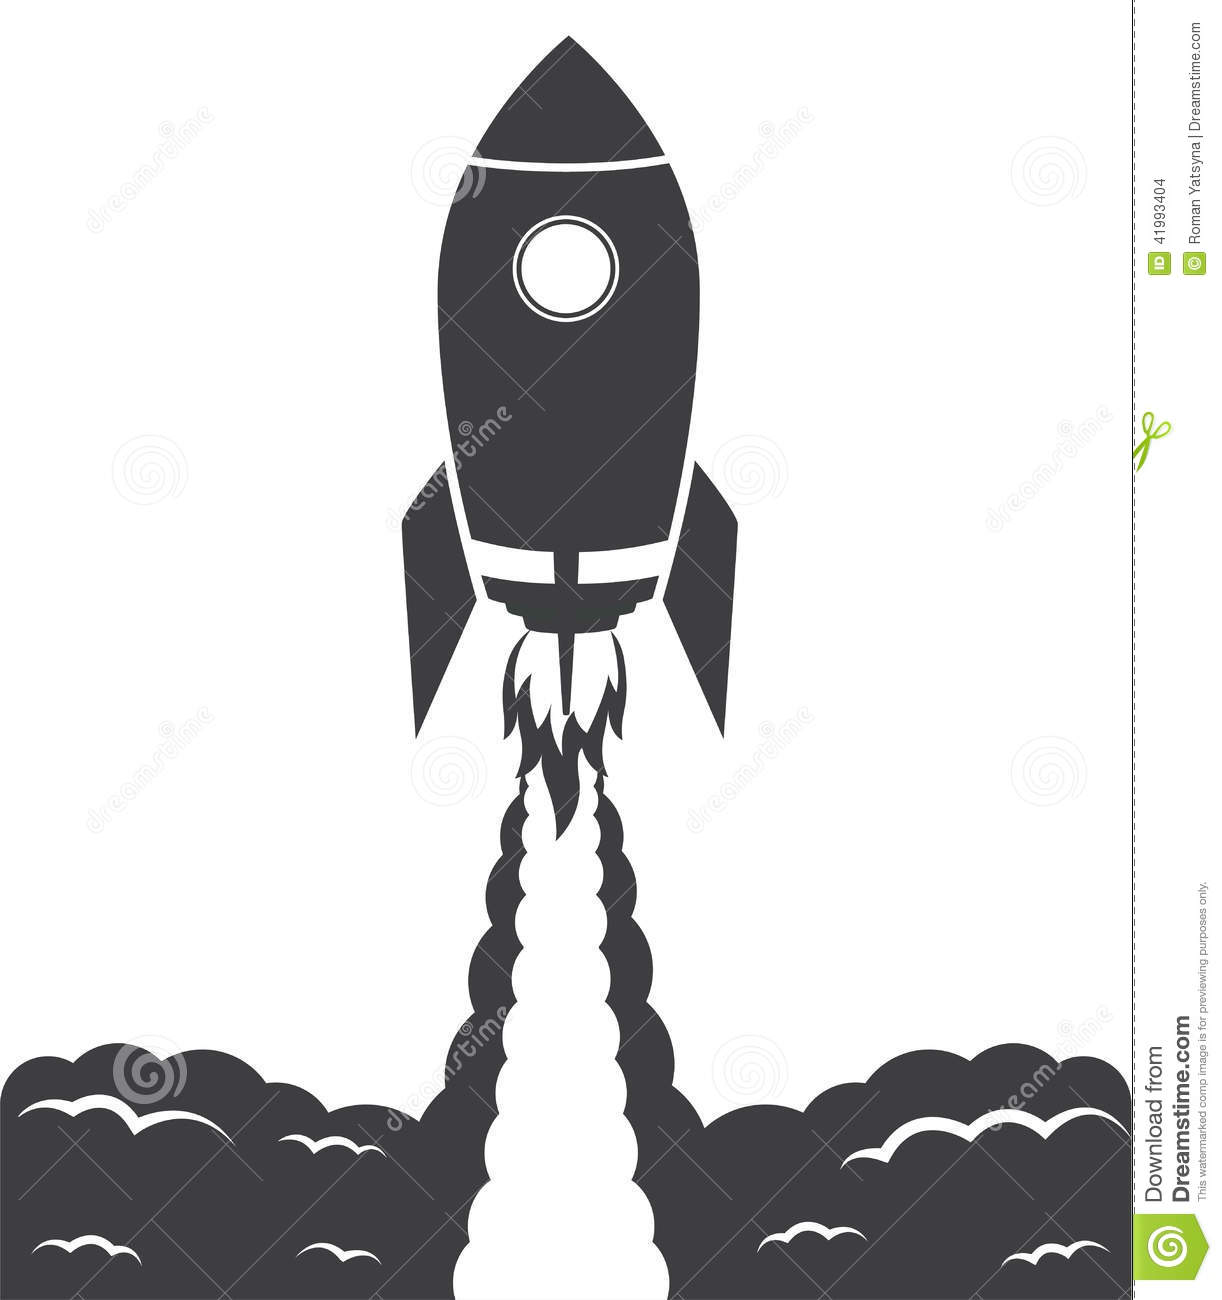 Startup Cosmic Rocket, Black And White Stock Vector ...